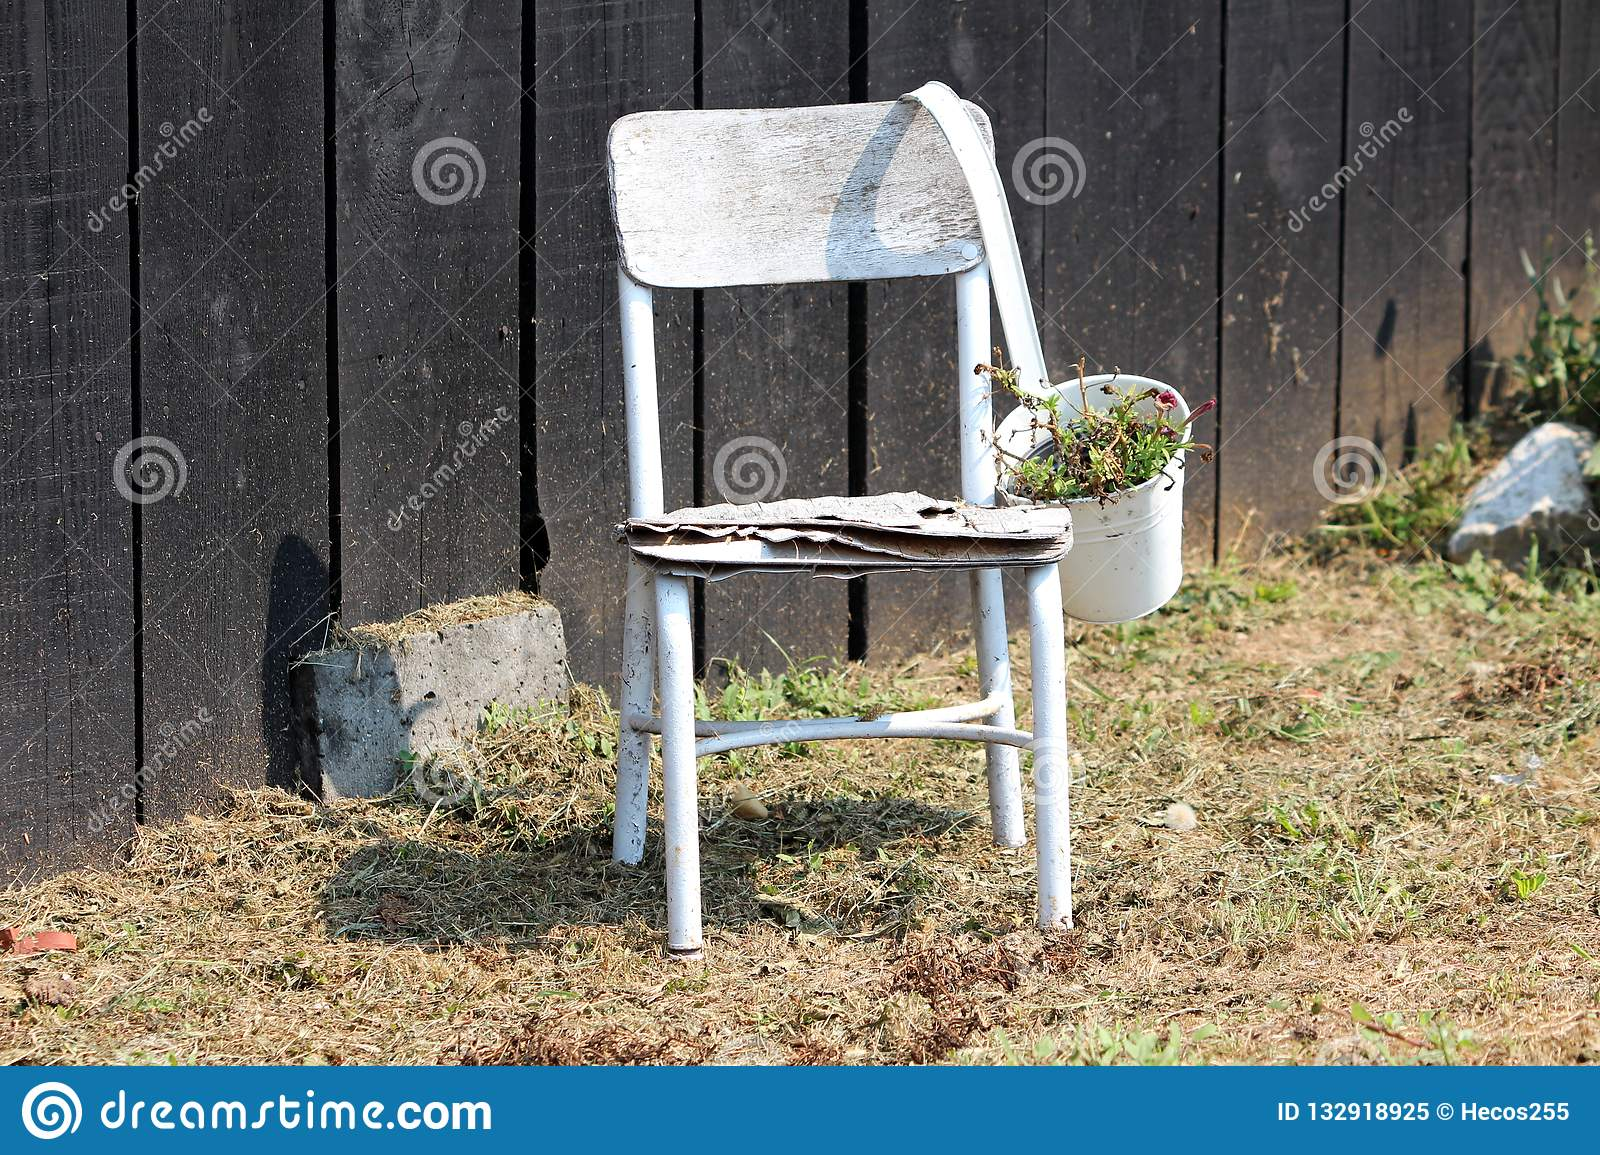 Wooden White Old Dilapidated Chair With Metal Flower Pot Used As Backyard Decoration In Front Of Black Wooden Barn Wall Stock Image Image Of Decoration Wooden 132918925